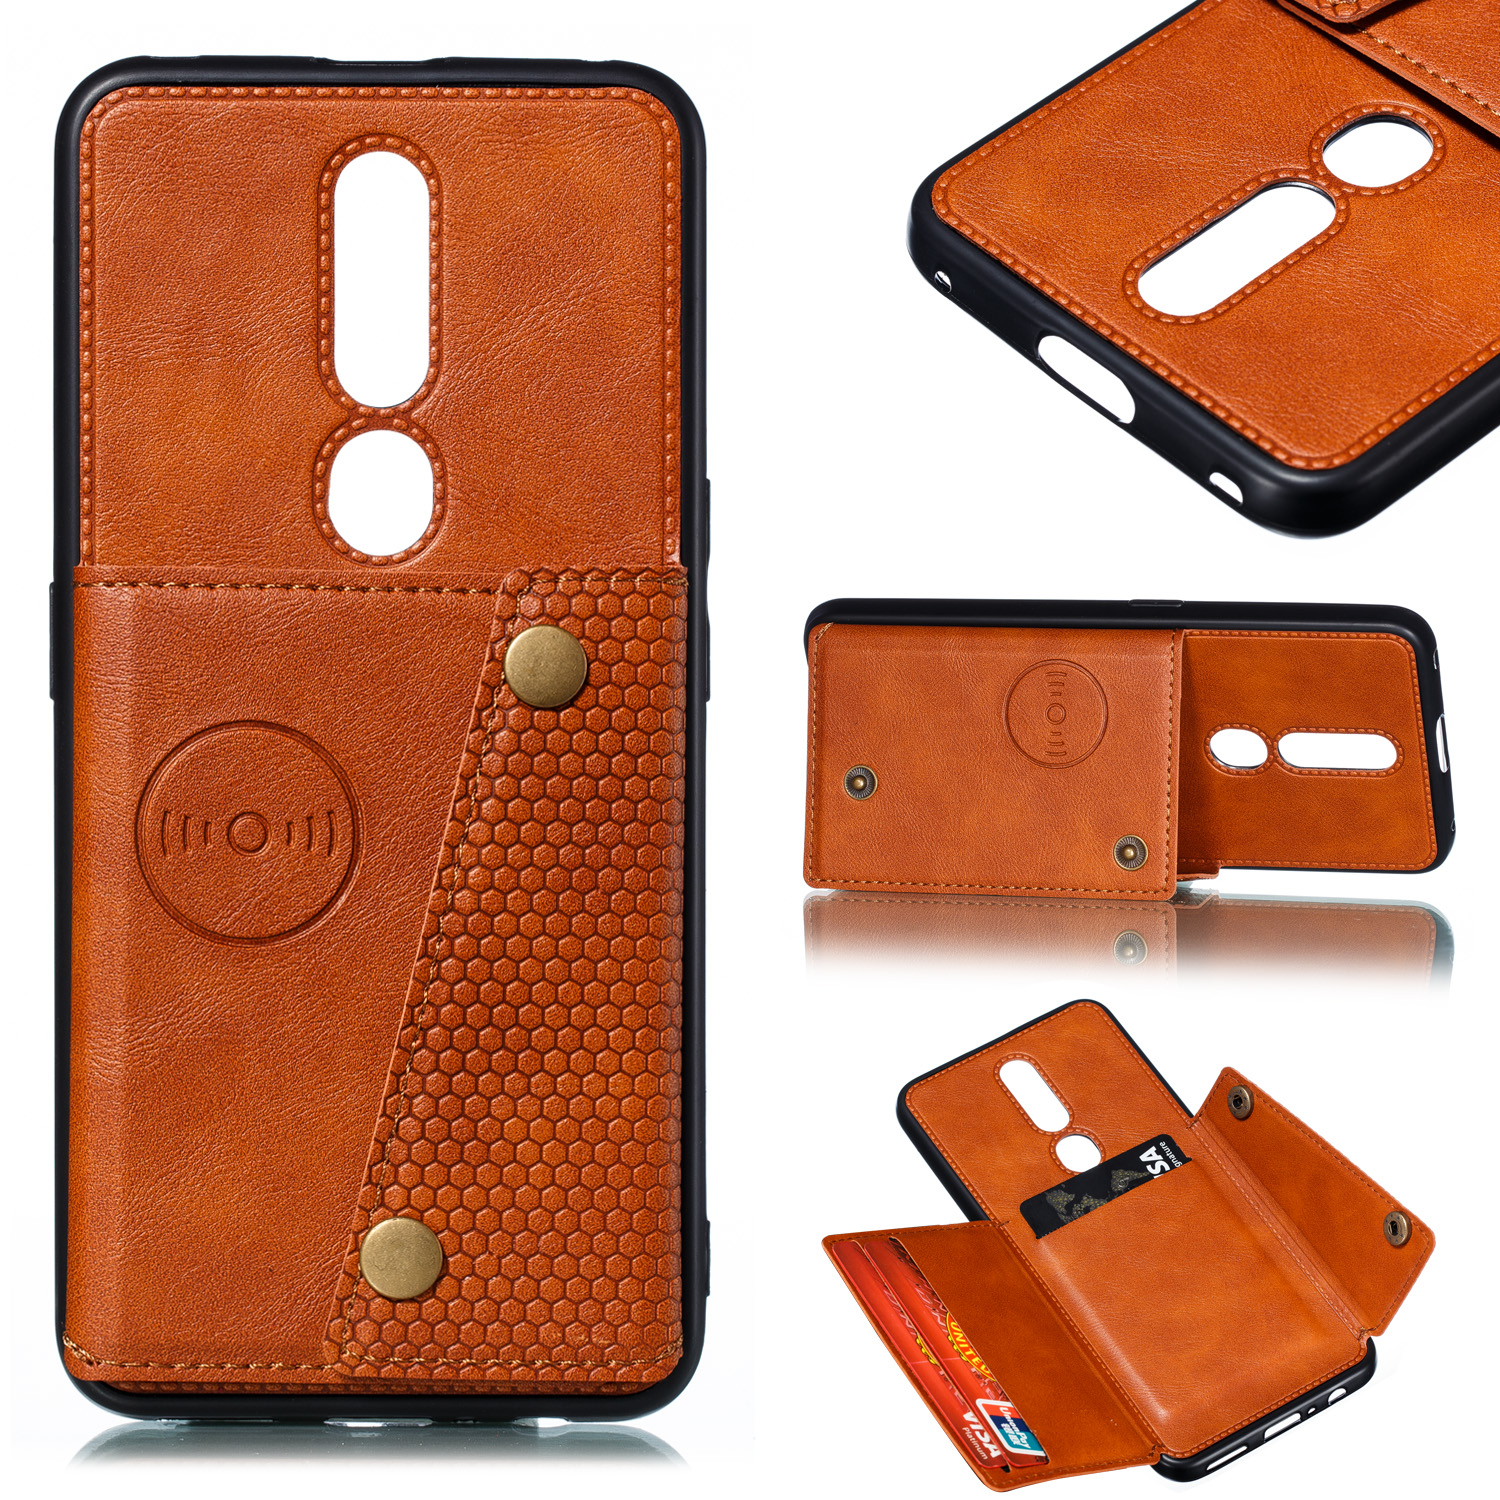 For OPPO F11 pro PU Leather Flip Stand Shockproof Cell Phone Cover Double Buckle Anti-dust Case With Card Slots Pocket Light Brown